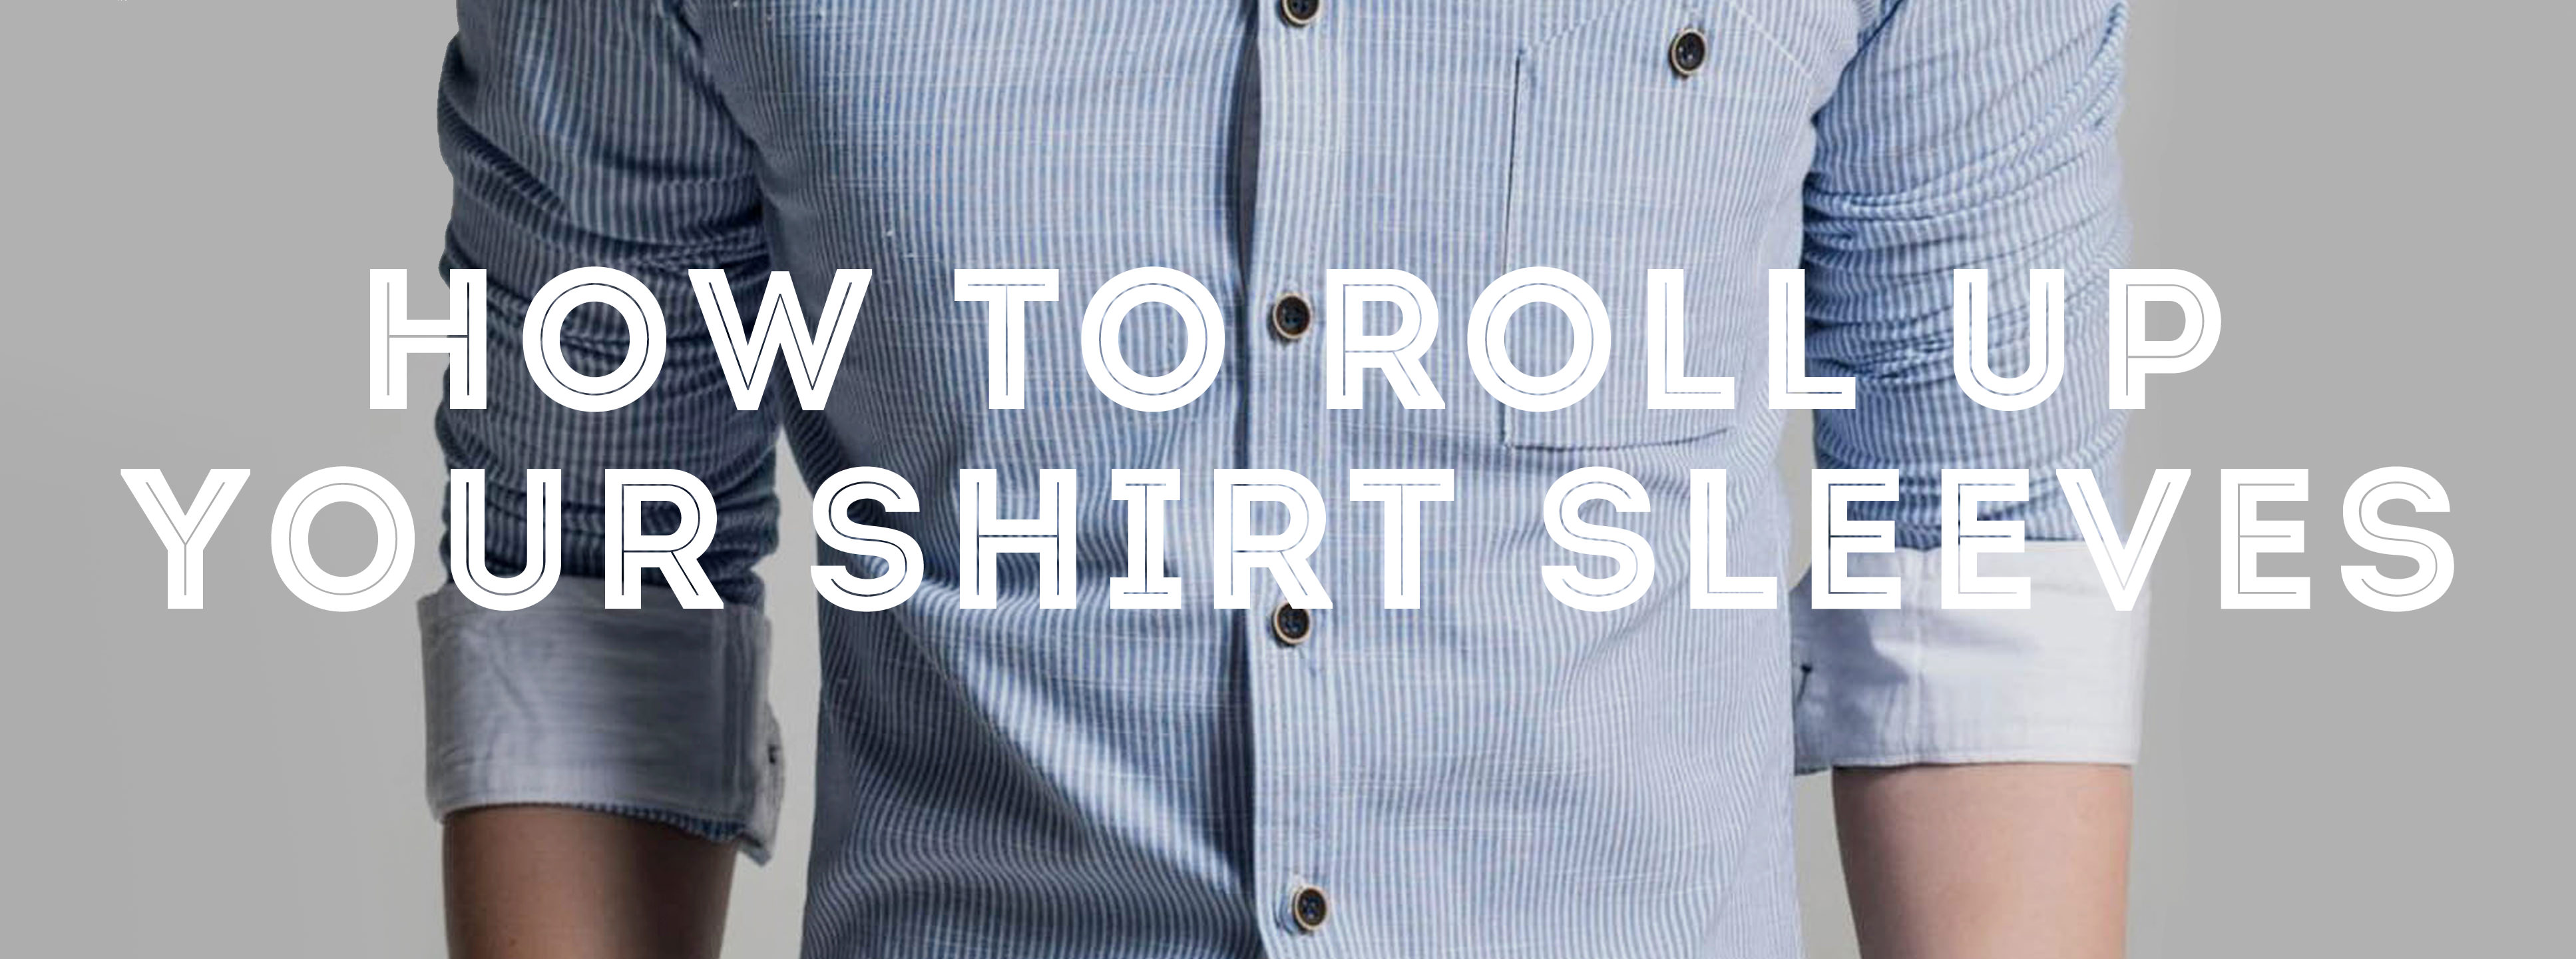 e9a109ab8fa9 How to Roll Up Your Sleeves — Gentleman's Gazette